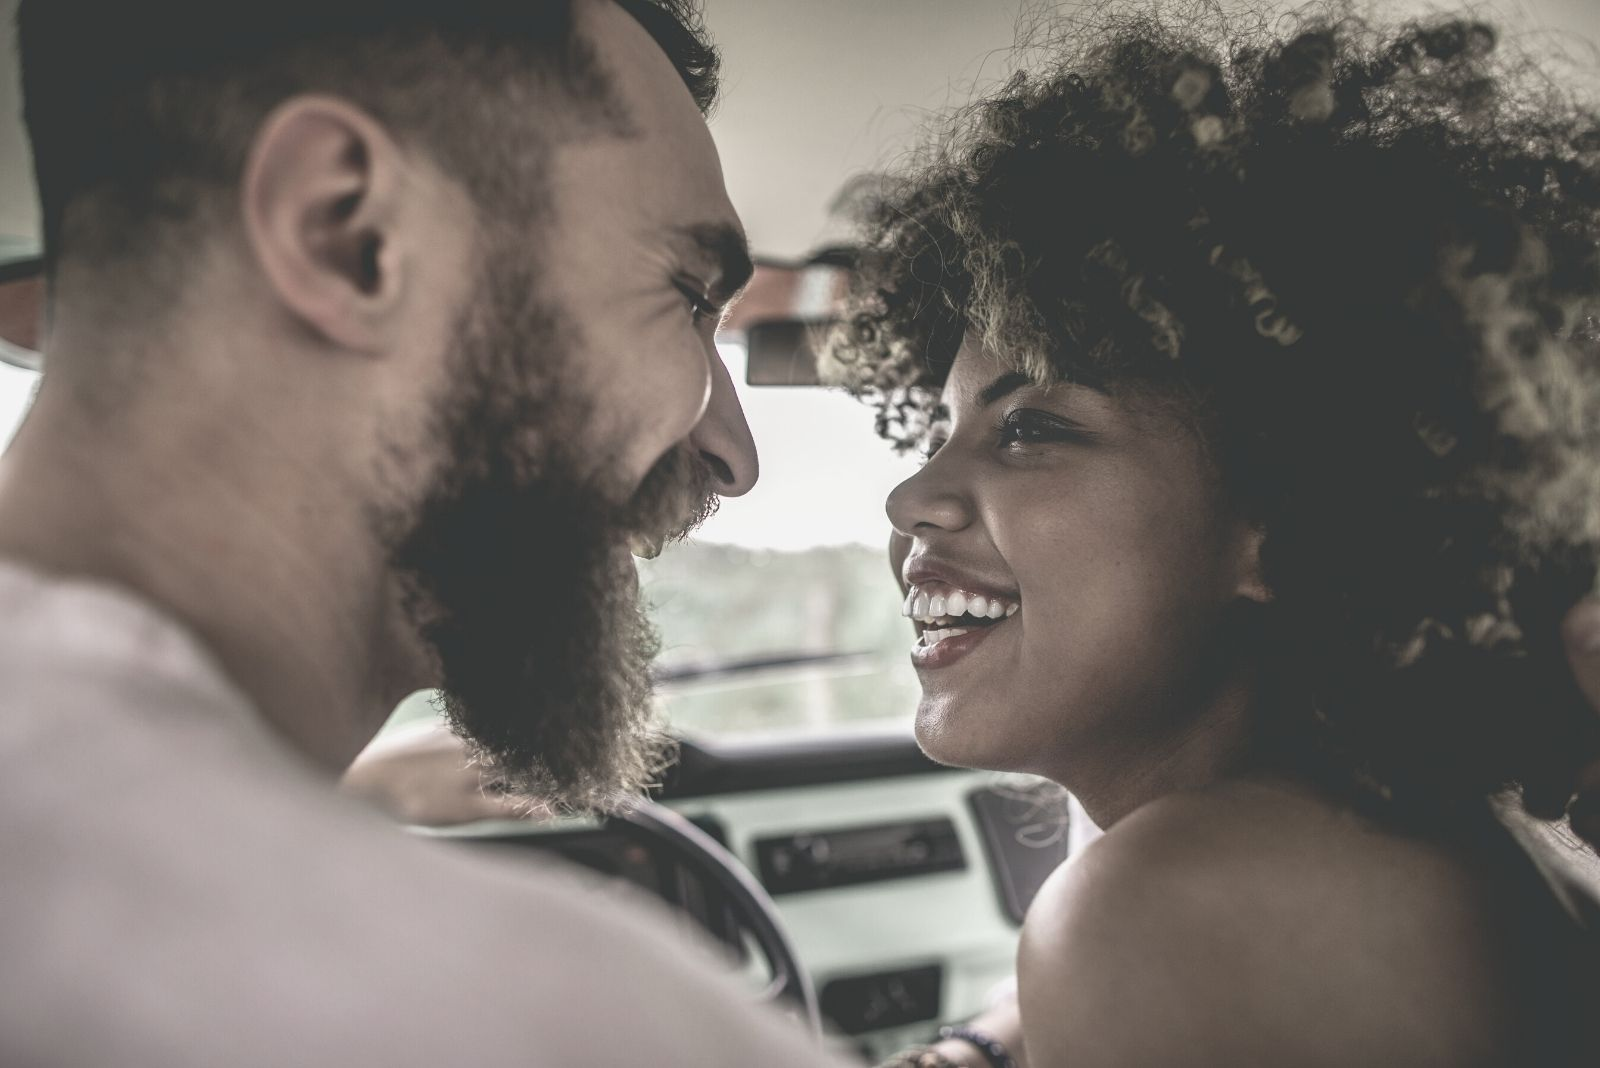 sweet young couple looking eye to eye while inside the car driving